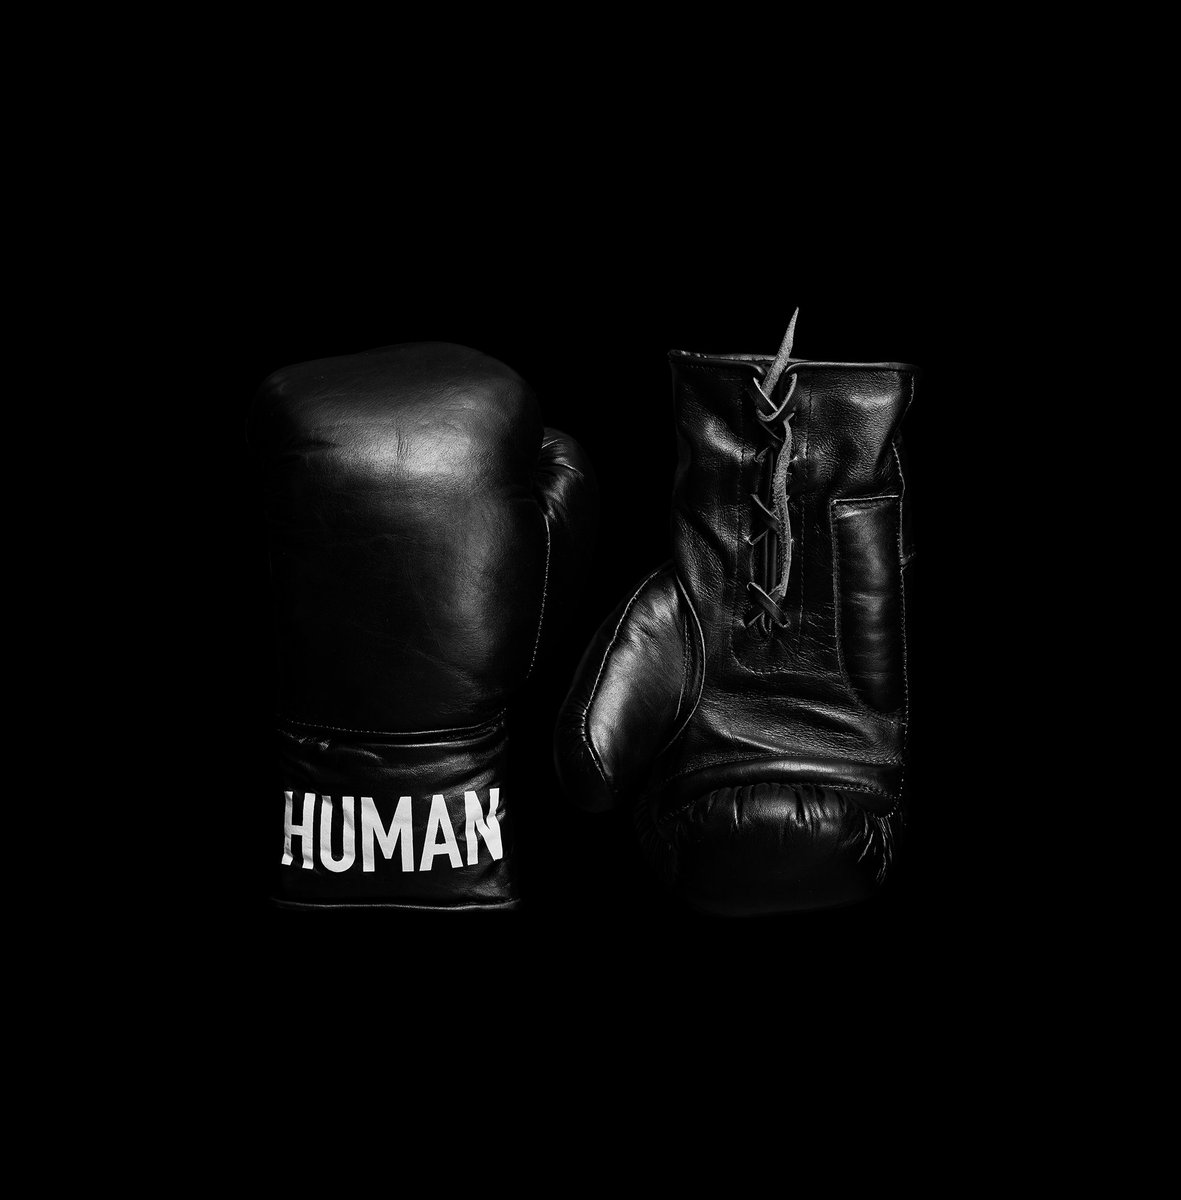 HUMAN Boxing | The Modest Vintage Player | 1 of 1  Available Now: smarturl.it/human-boxing https://t.co/hov4uwb5Su